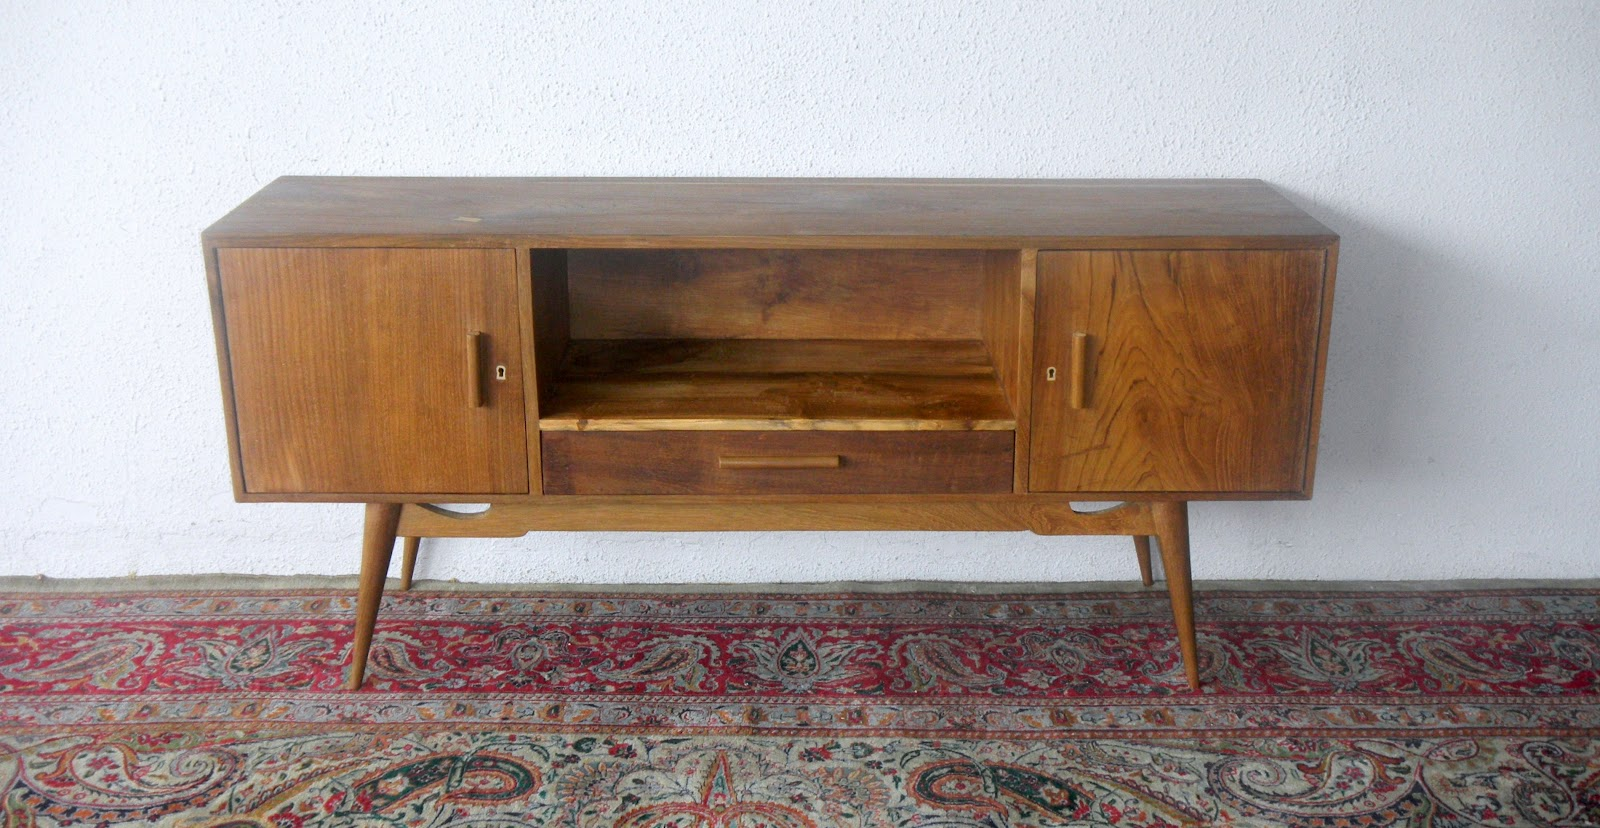 : BEAUTIFUL SIDEBOARDS, WARDROBES AND WOODEN FILING CABINETS